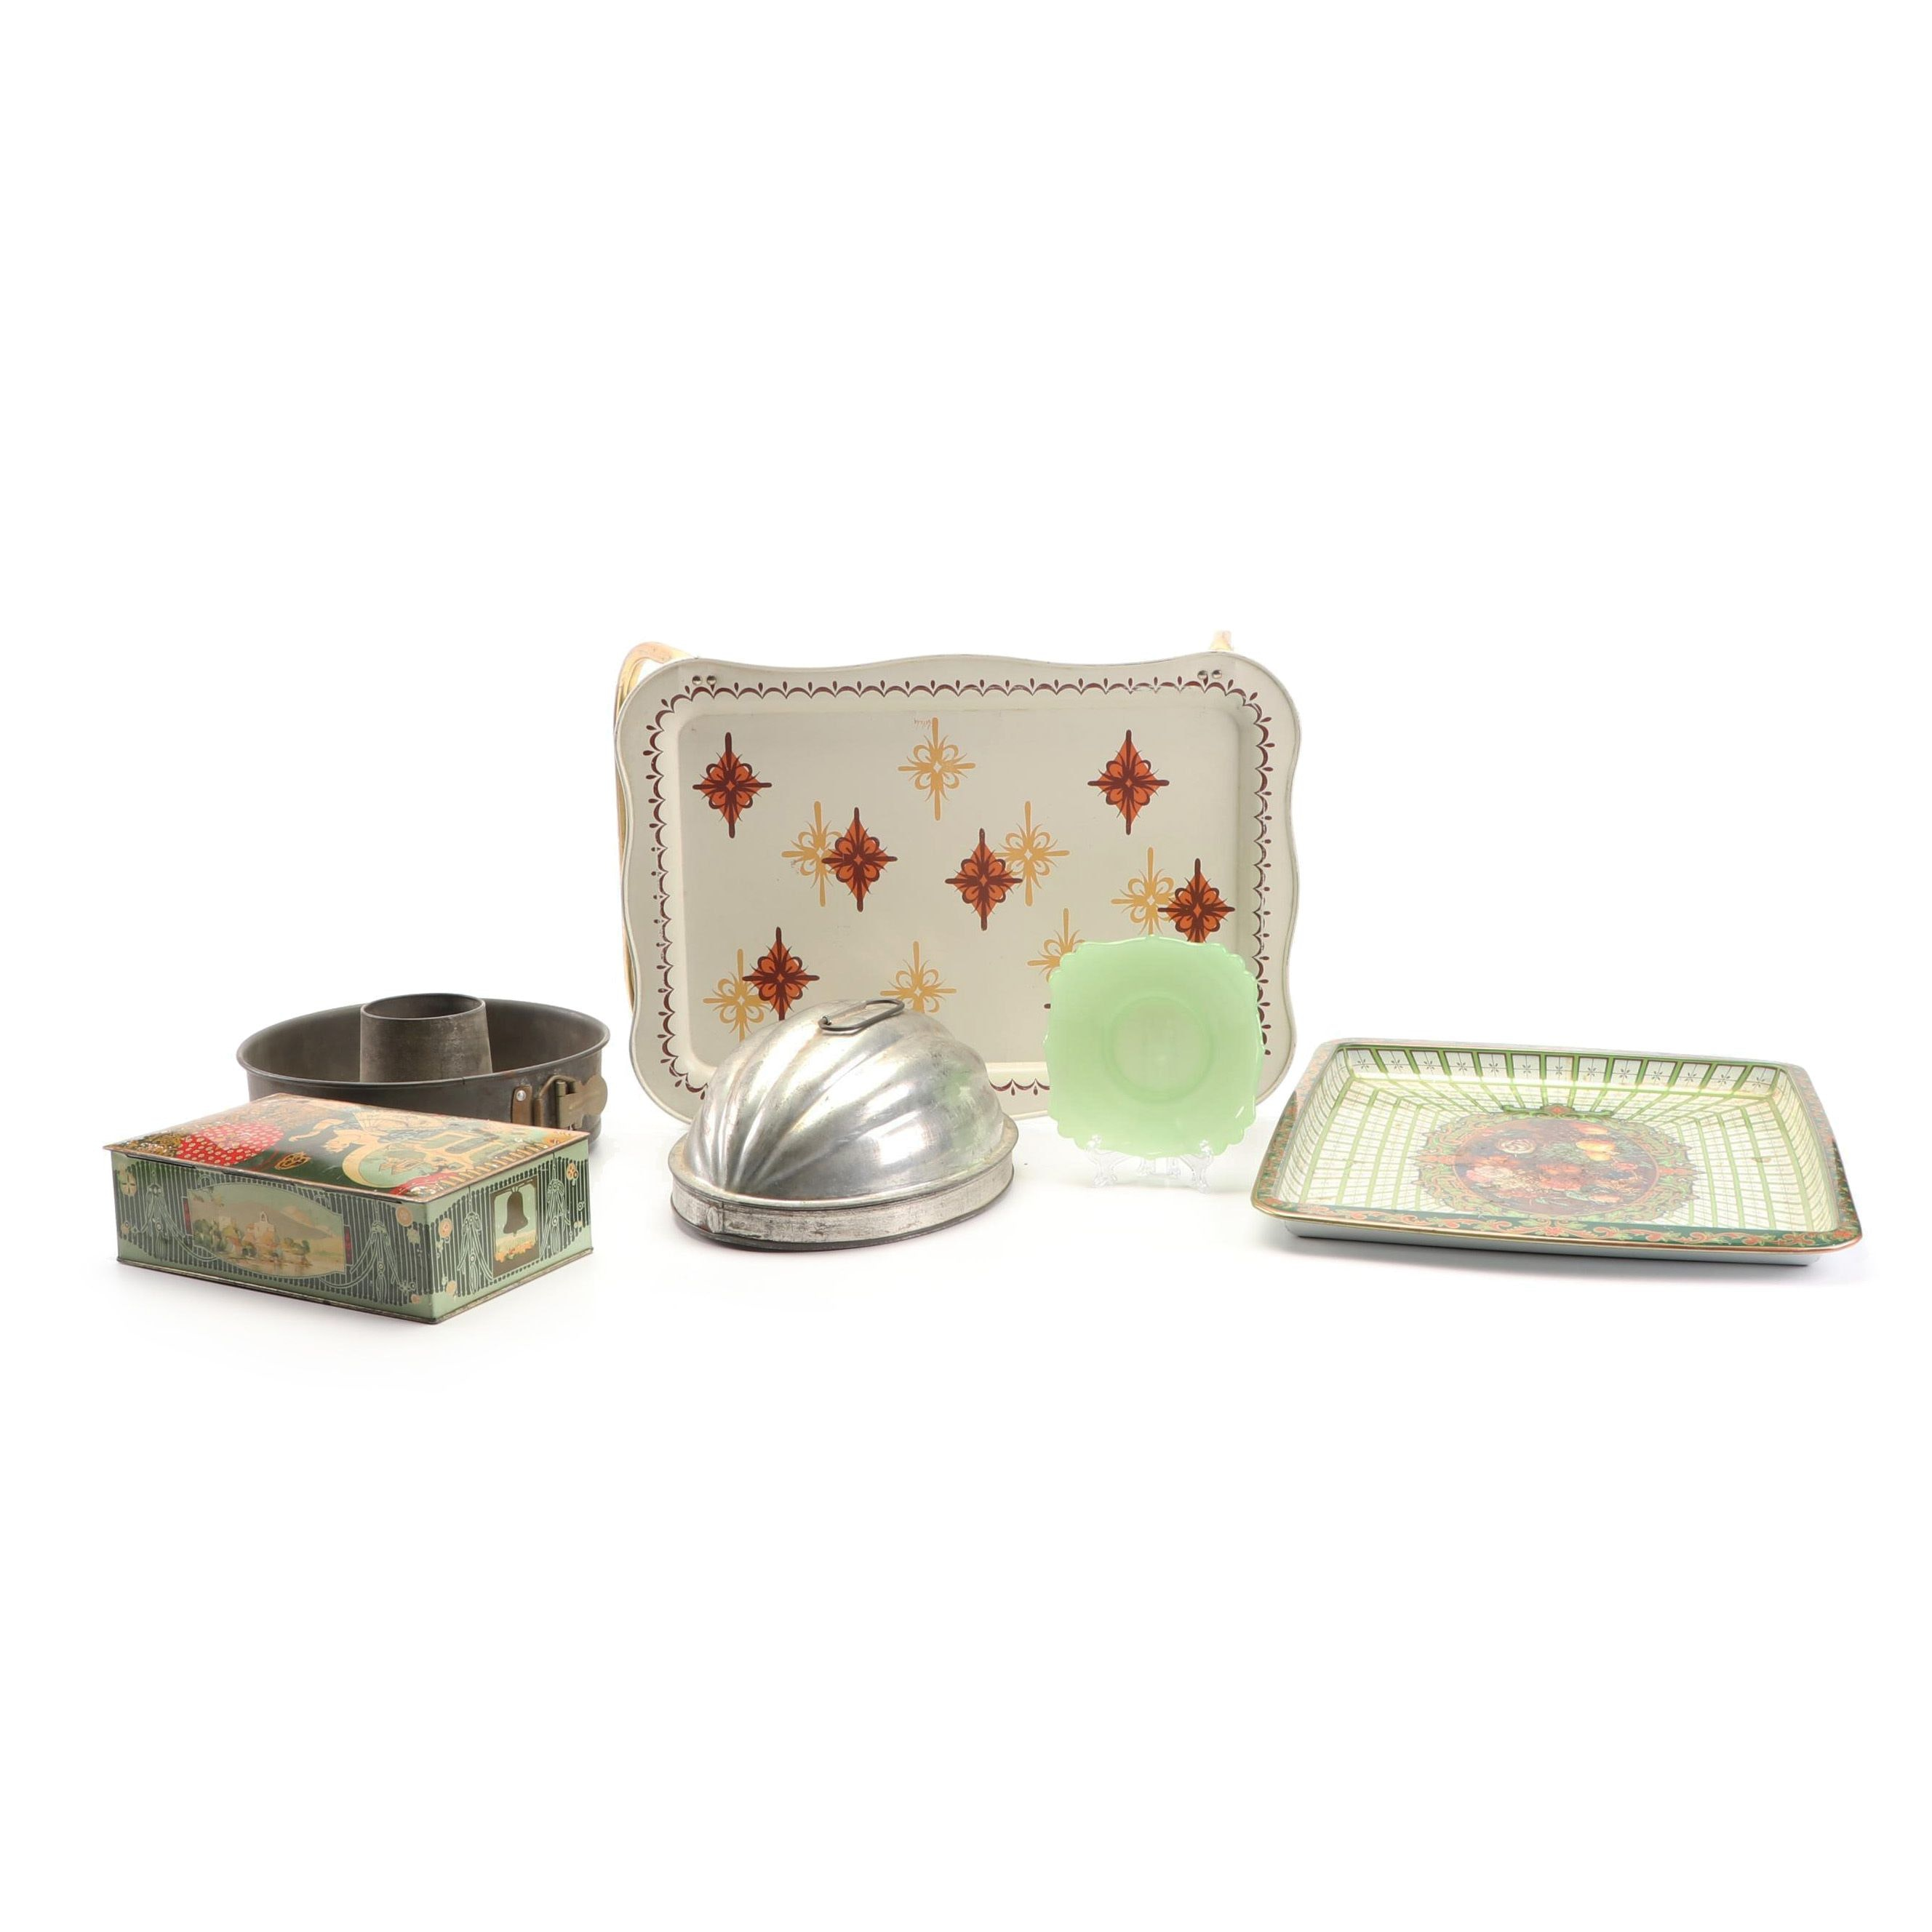 Vintage Metal Trays and Baking Molds with Tin Box and Jadeite Plate